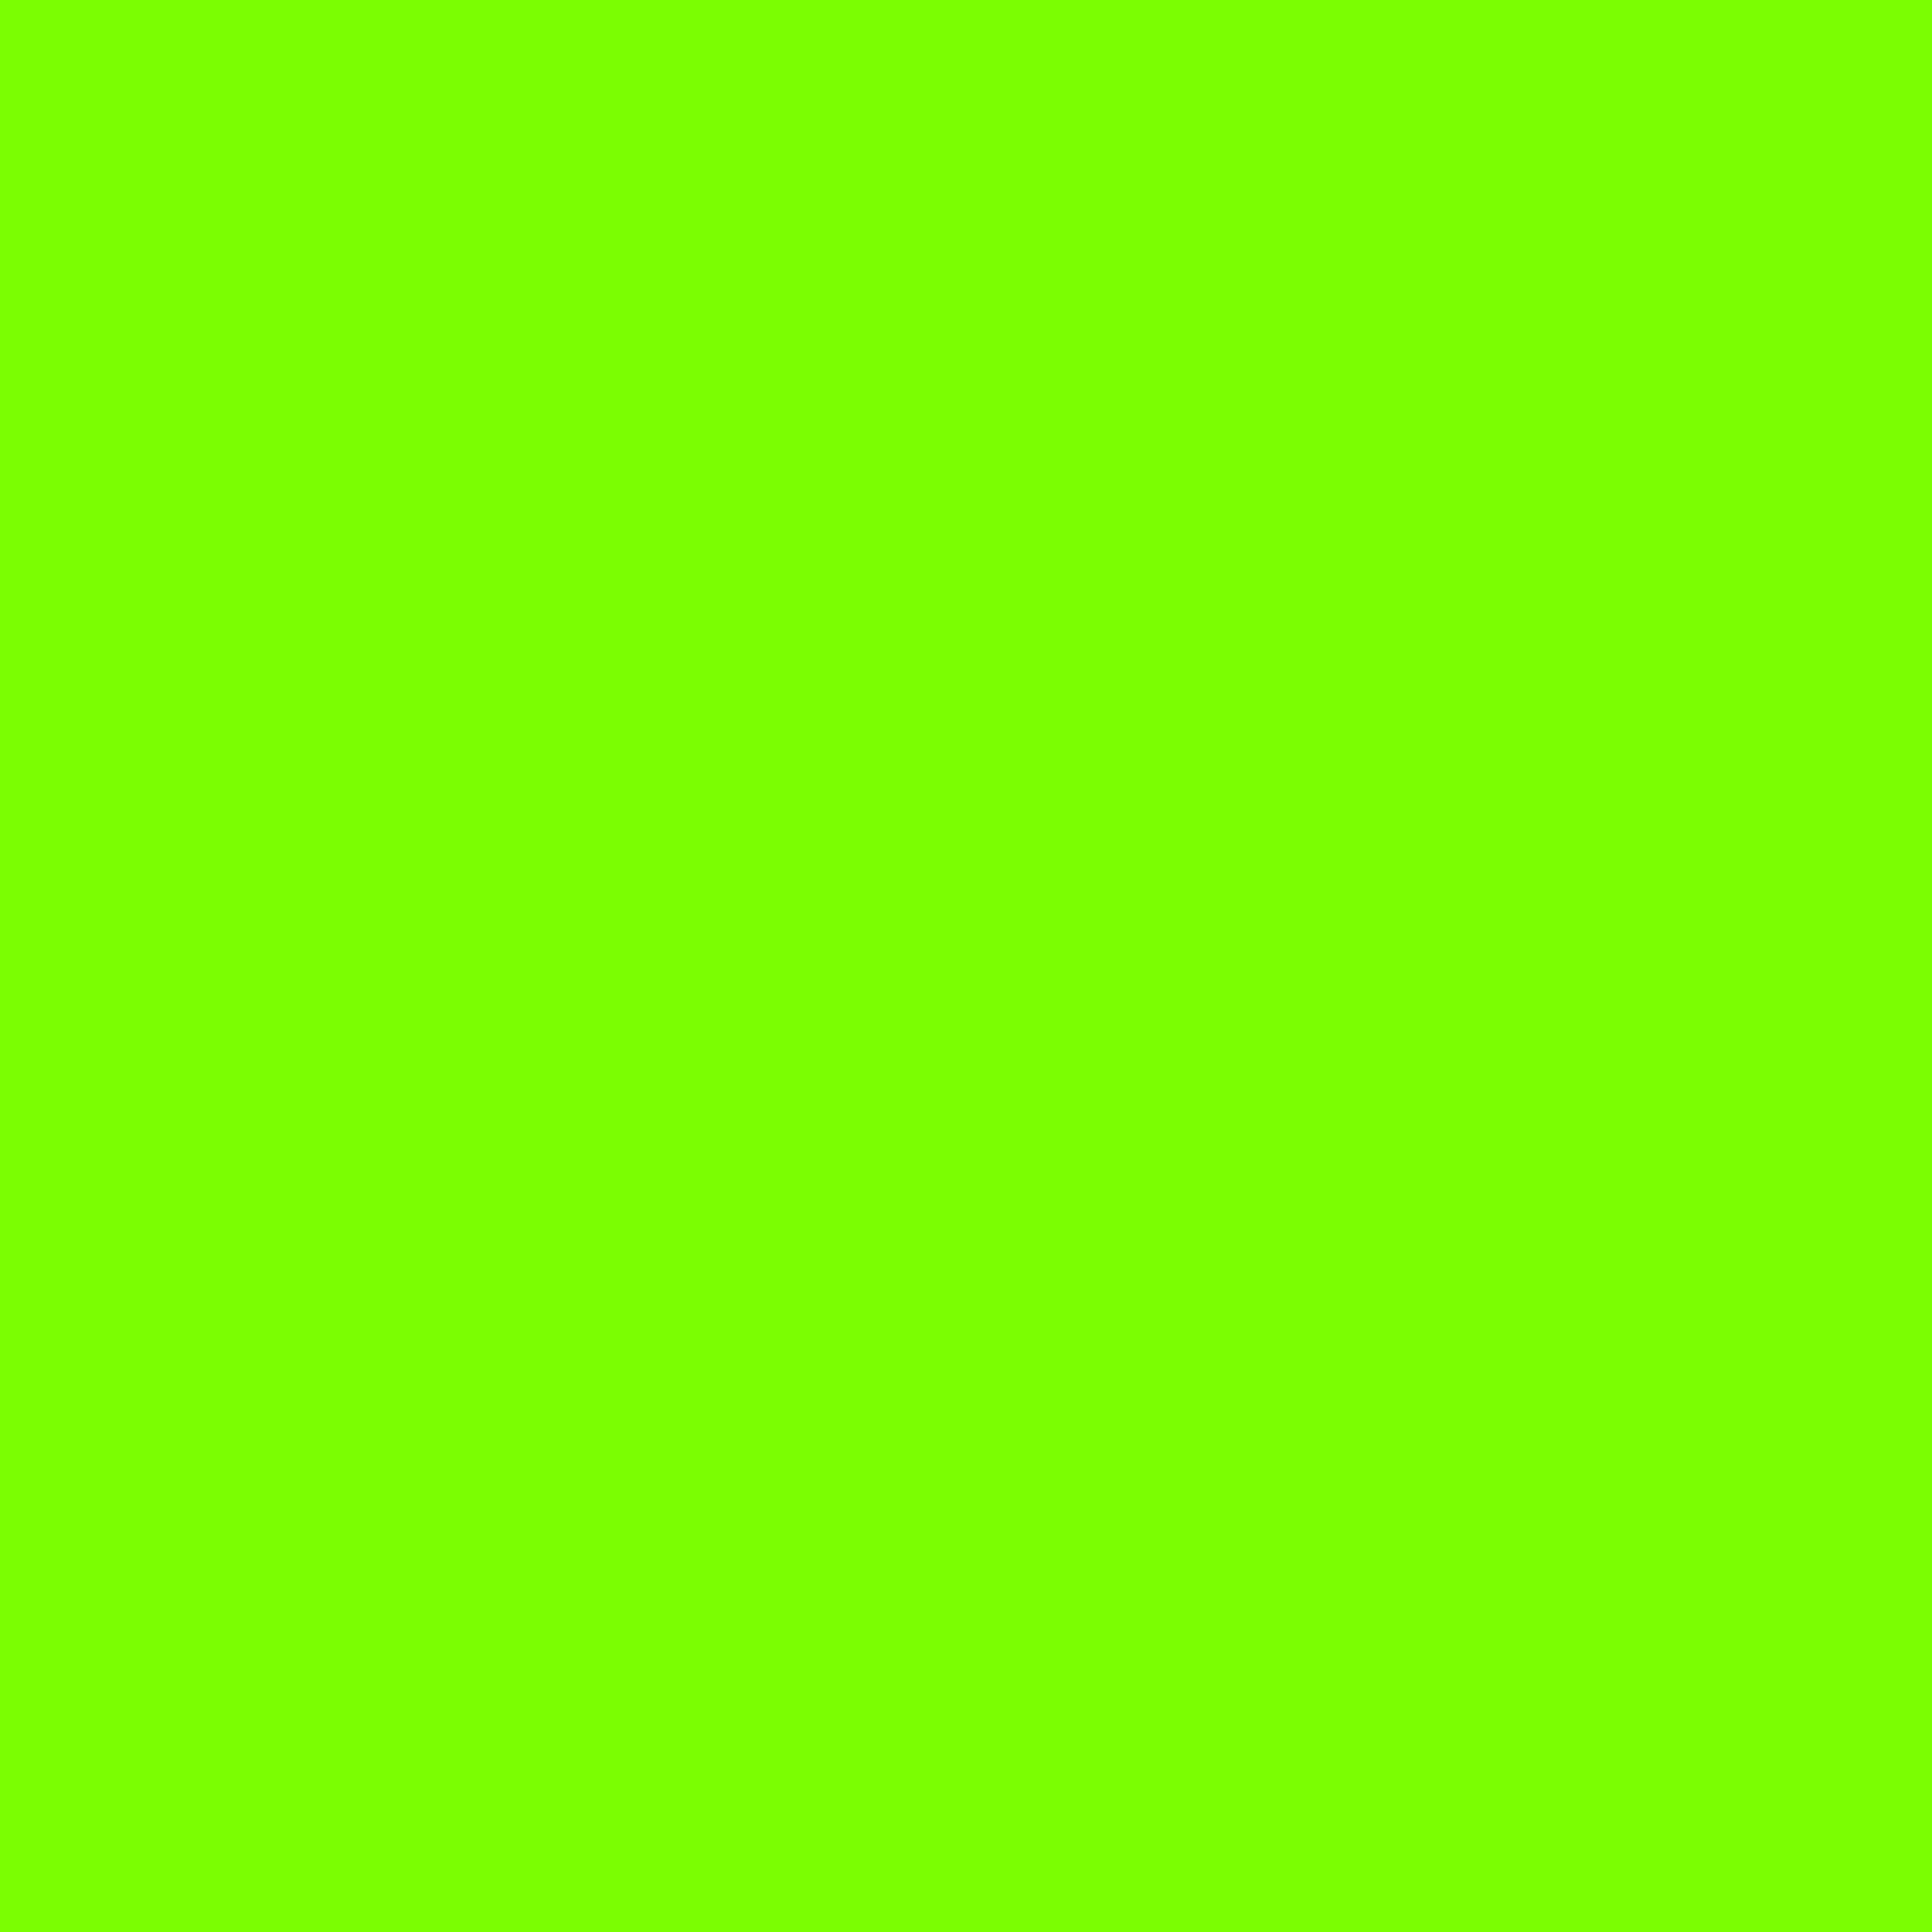 2048x2048 Lawn Green Solid Color Background